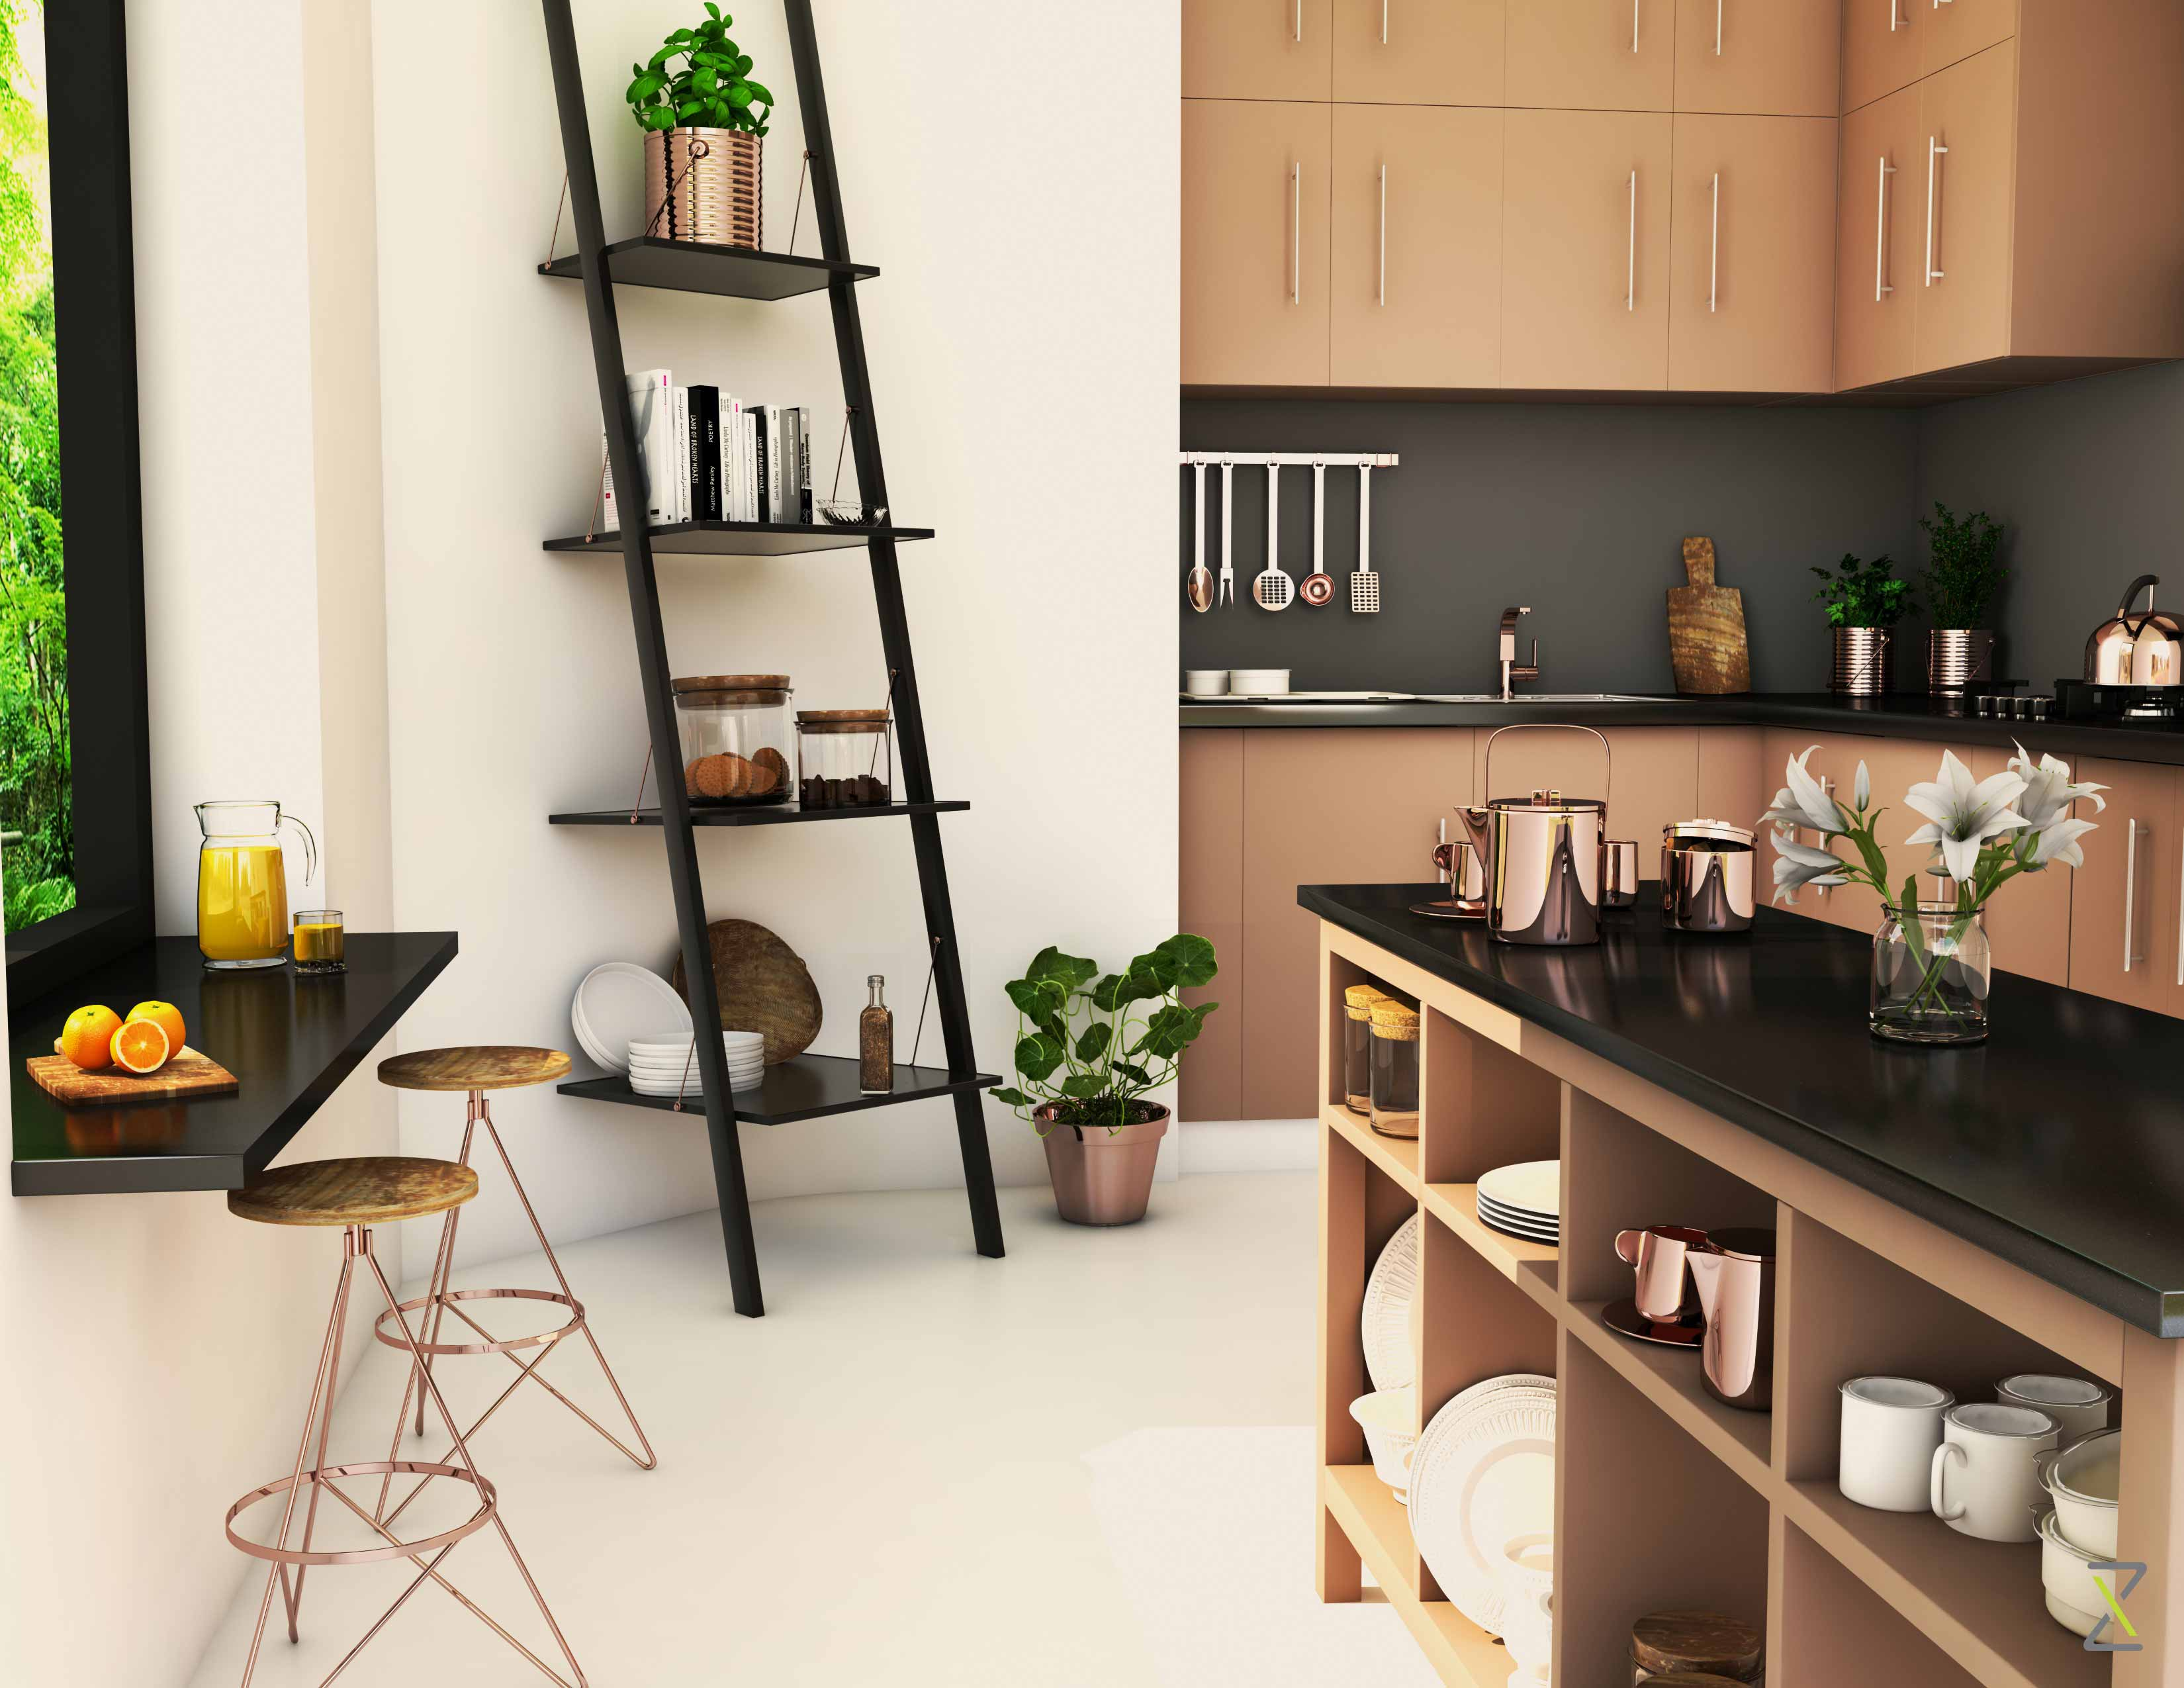 Designed by zeitgeist we have incorporated clean lines and a greige palette but have introduced copper fittings and accessories to retain an indian